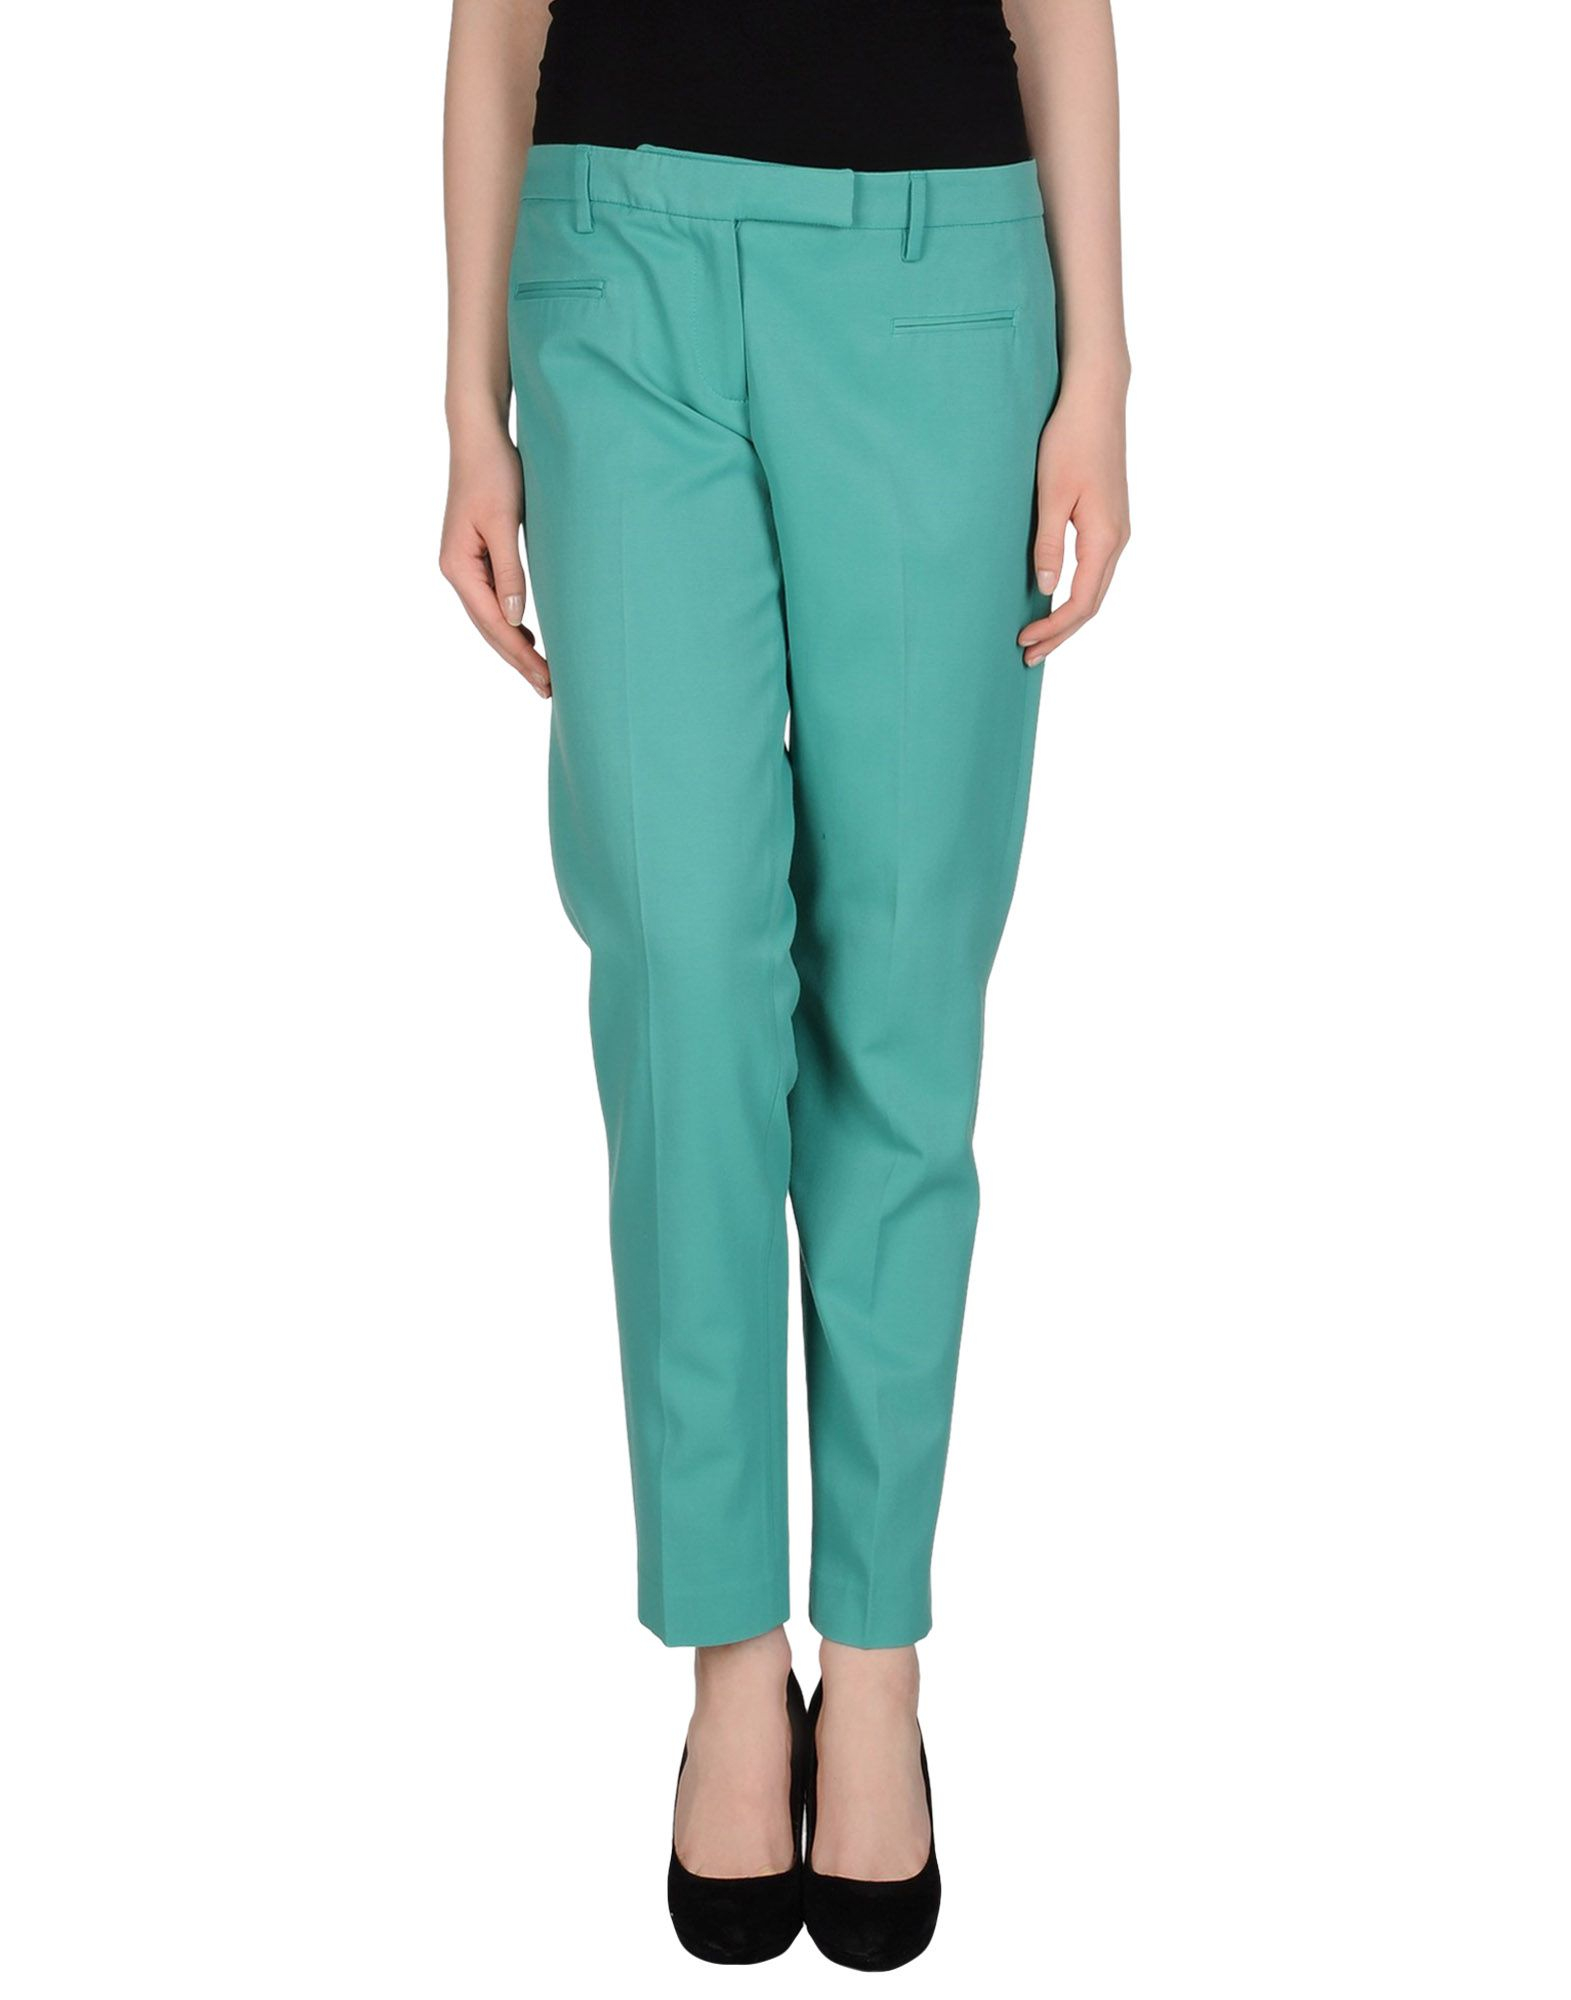 Buy Cheap Sale Limited Edition TROUSERS - 3/4-length trousers Faberge & Roches Latest For Sale High Quality 8faWv84g